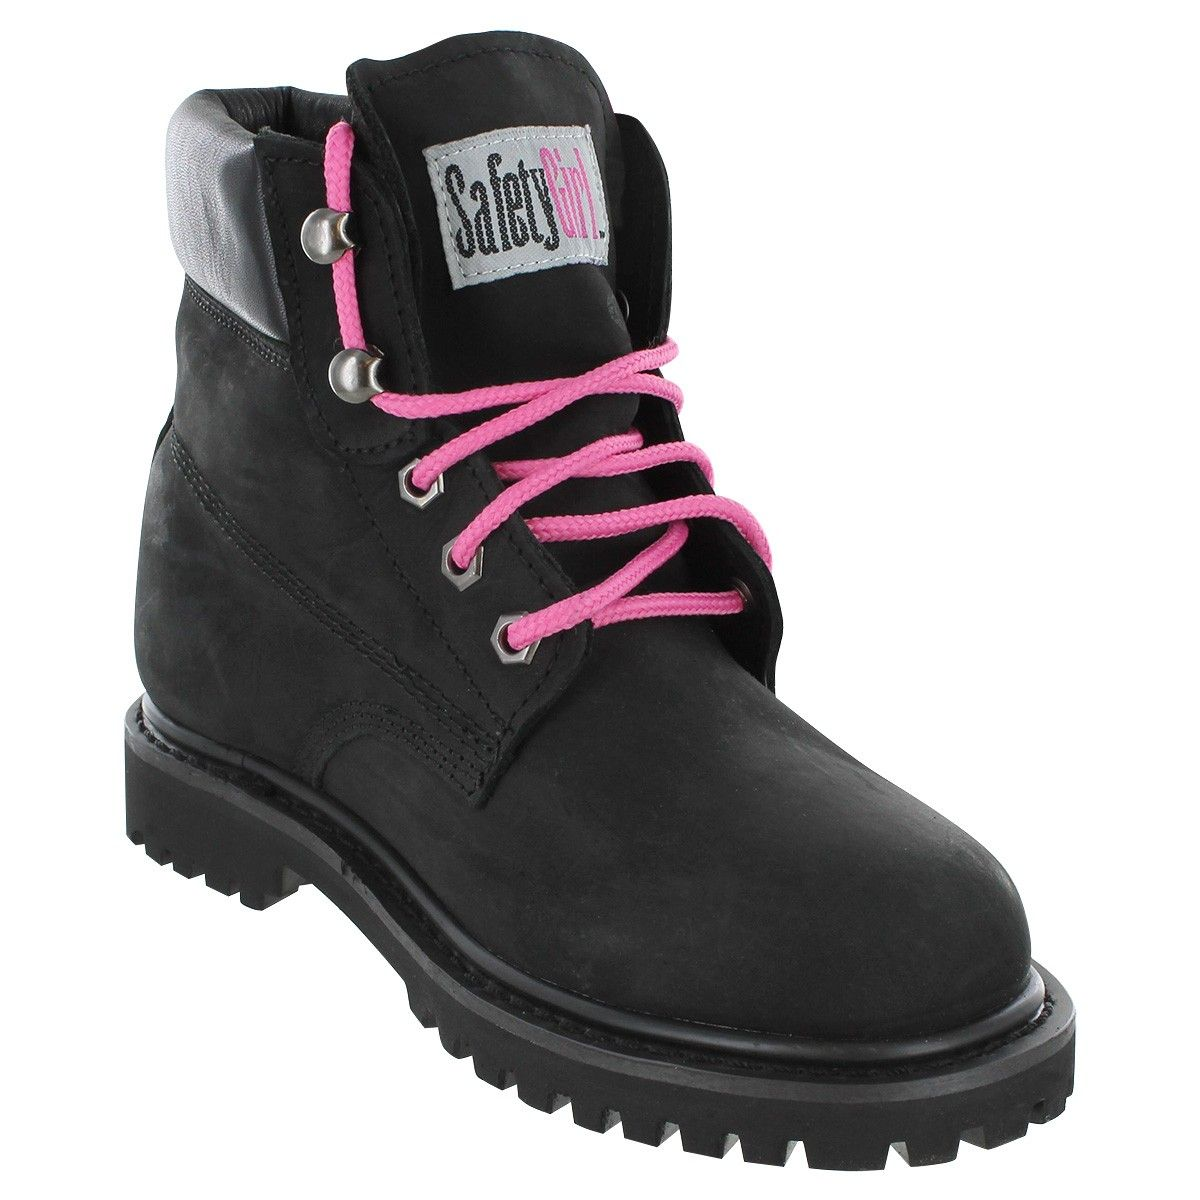 LADIES WOMENS BLACK LEATHER STEEL TOE CAP SAFETY ANKLE WORK BOOTS SHOES TRAINERS